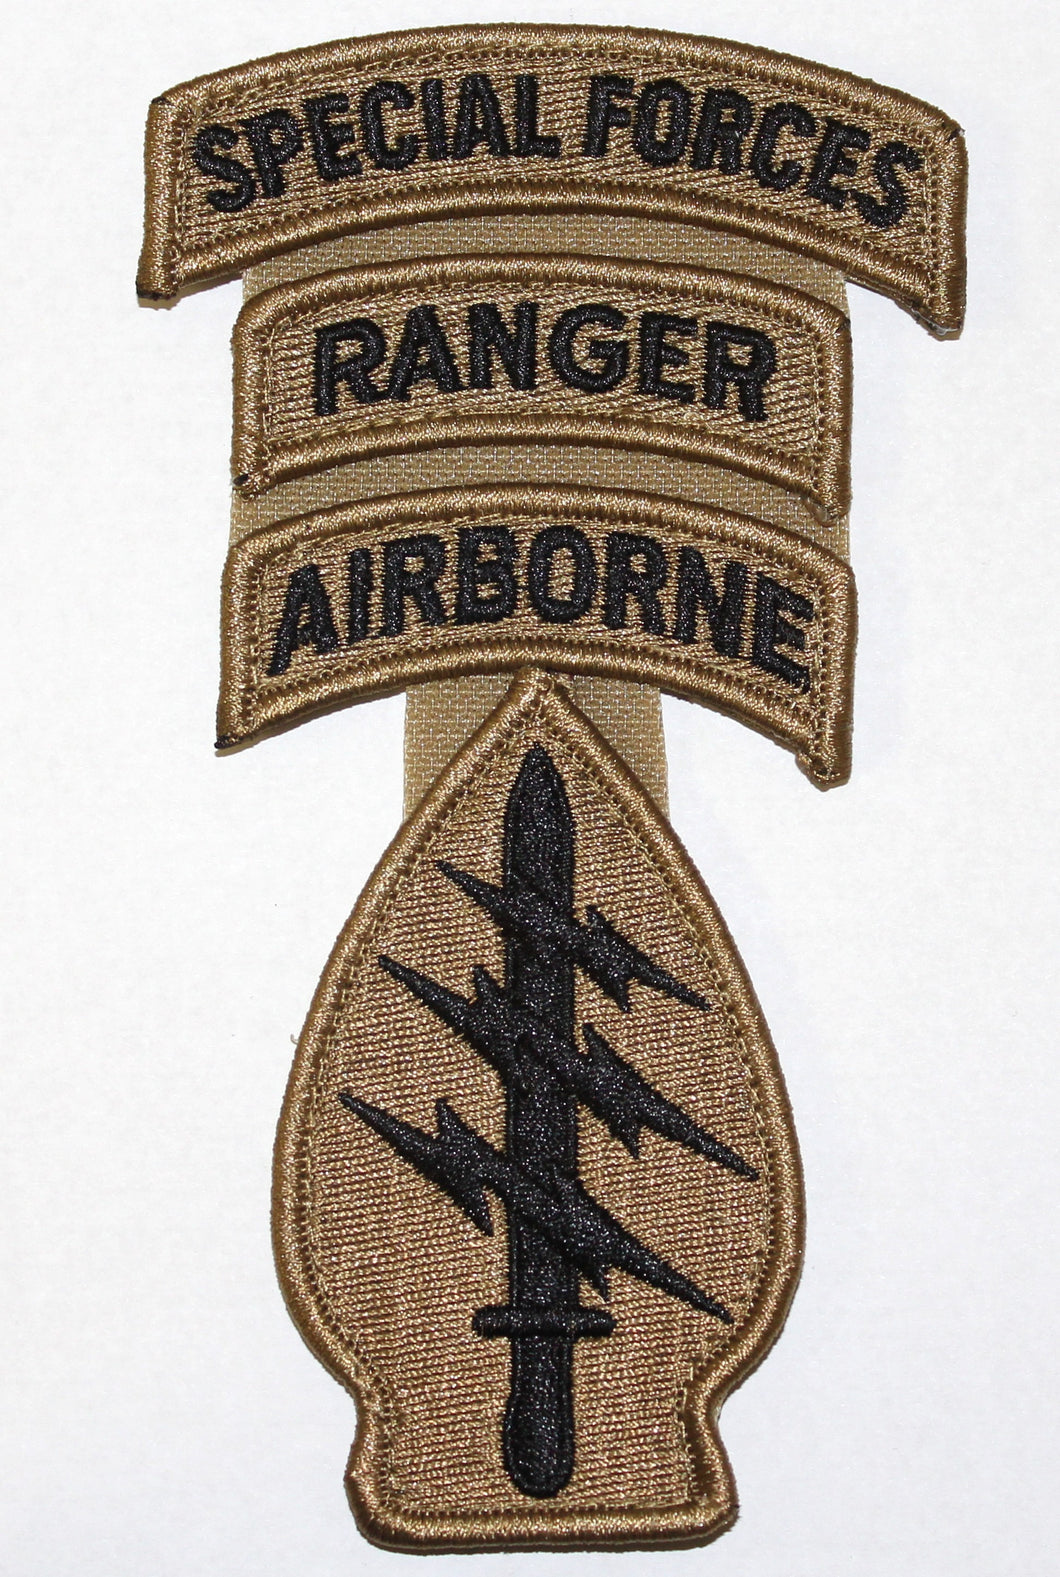 PATCH SF W/ABN, SF, RNGR OCP - 2253F